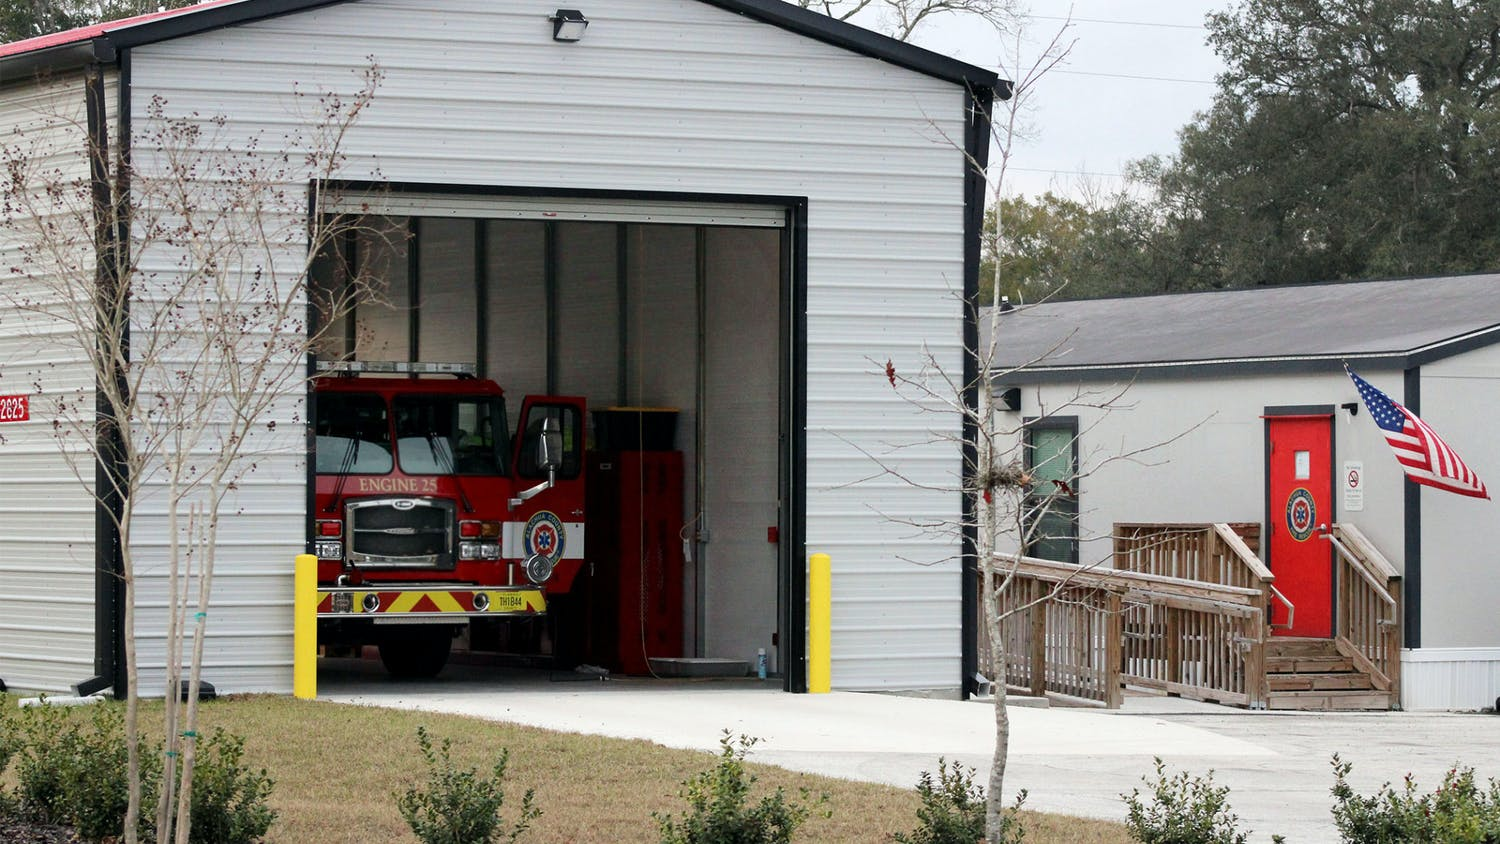 A fire engine sits under a newly constructed shed at the Alachua County Fire Rescue Station 25 on Tuesday, Jan. 26, 2021. The station didn't have an enclosed space for the engine and was not recognized as a fire station when it opened last January, despite being on call and operating as one.